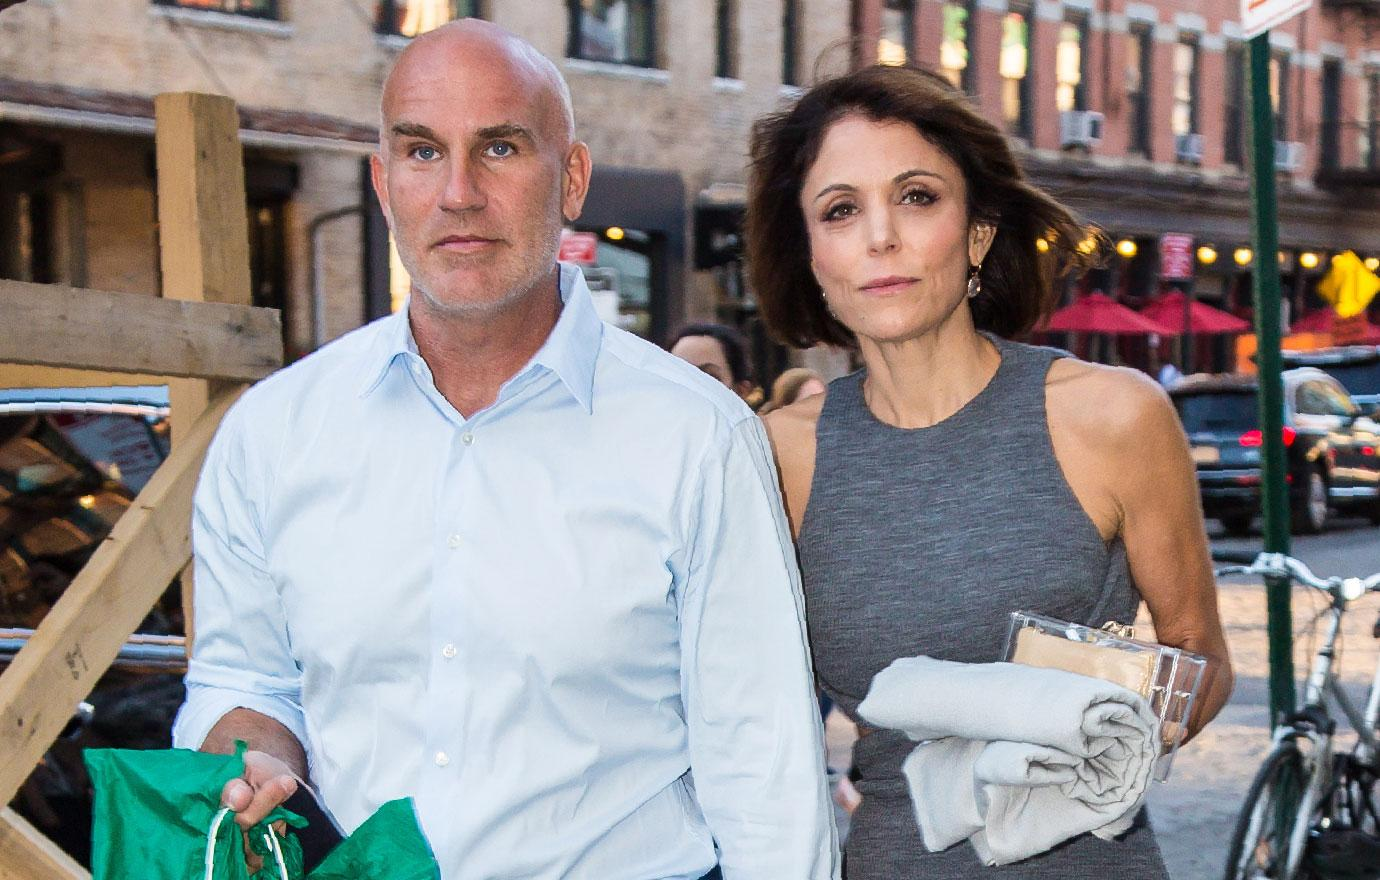 Bethenny Frankel's Beau Dennis Shields Spoke About Dating Her Days Before His Death